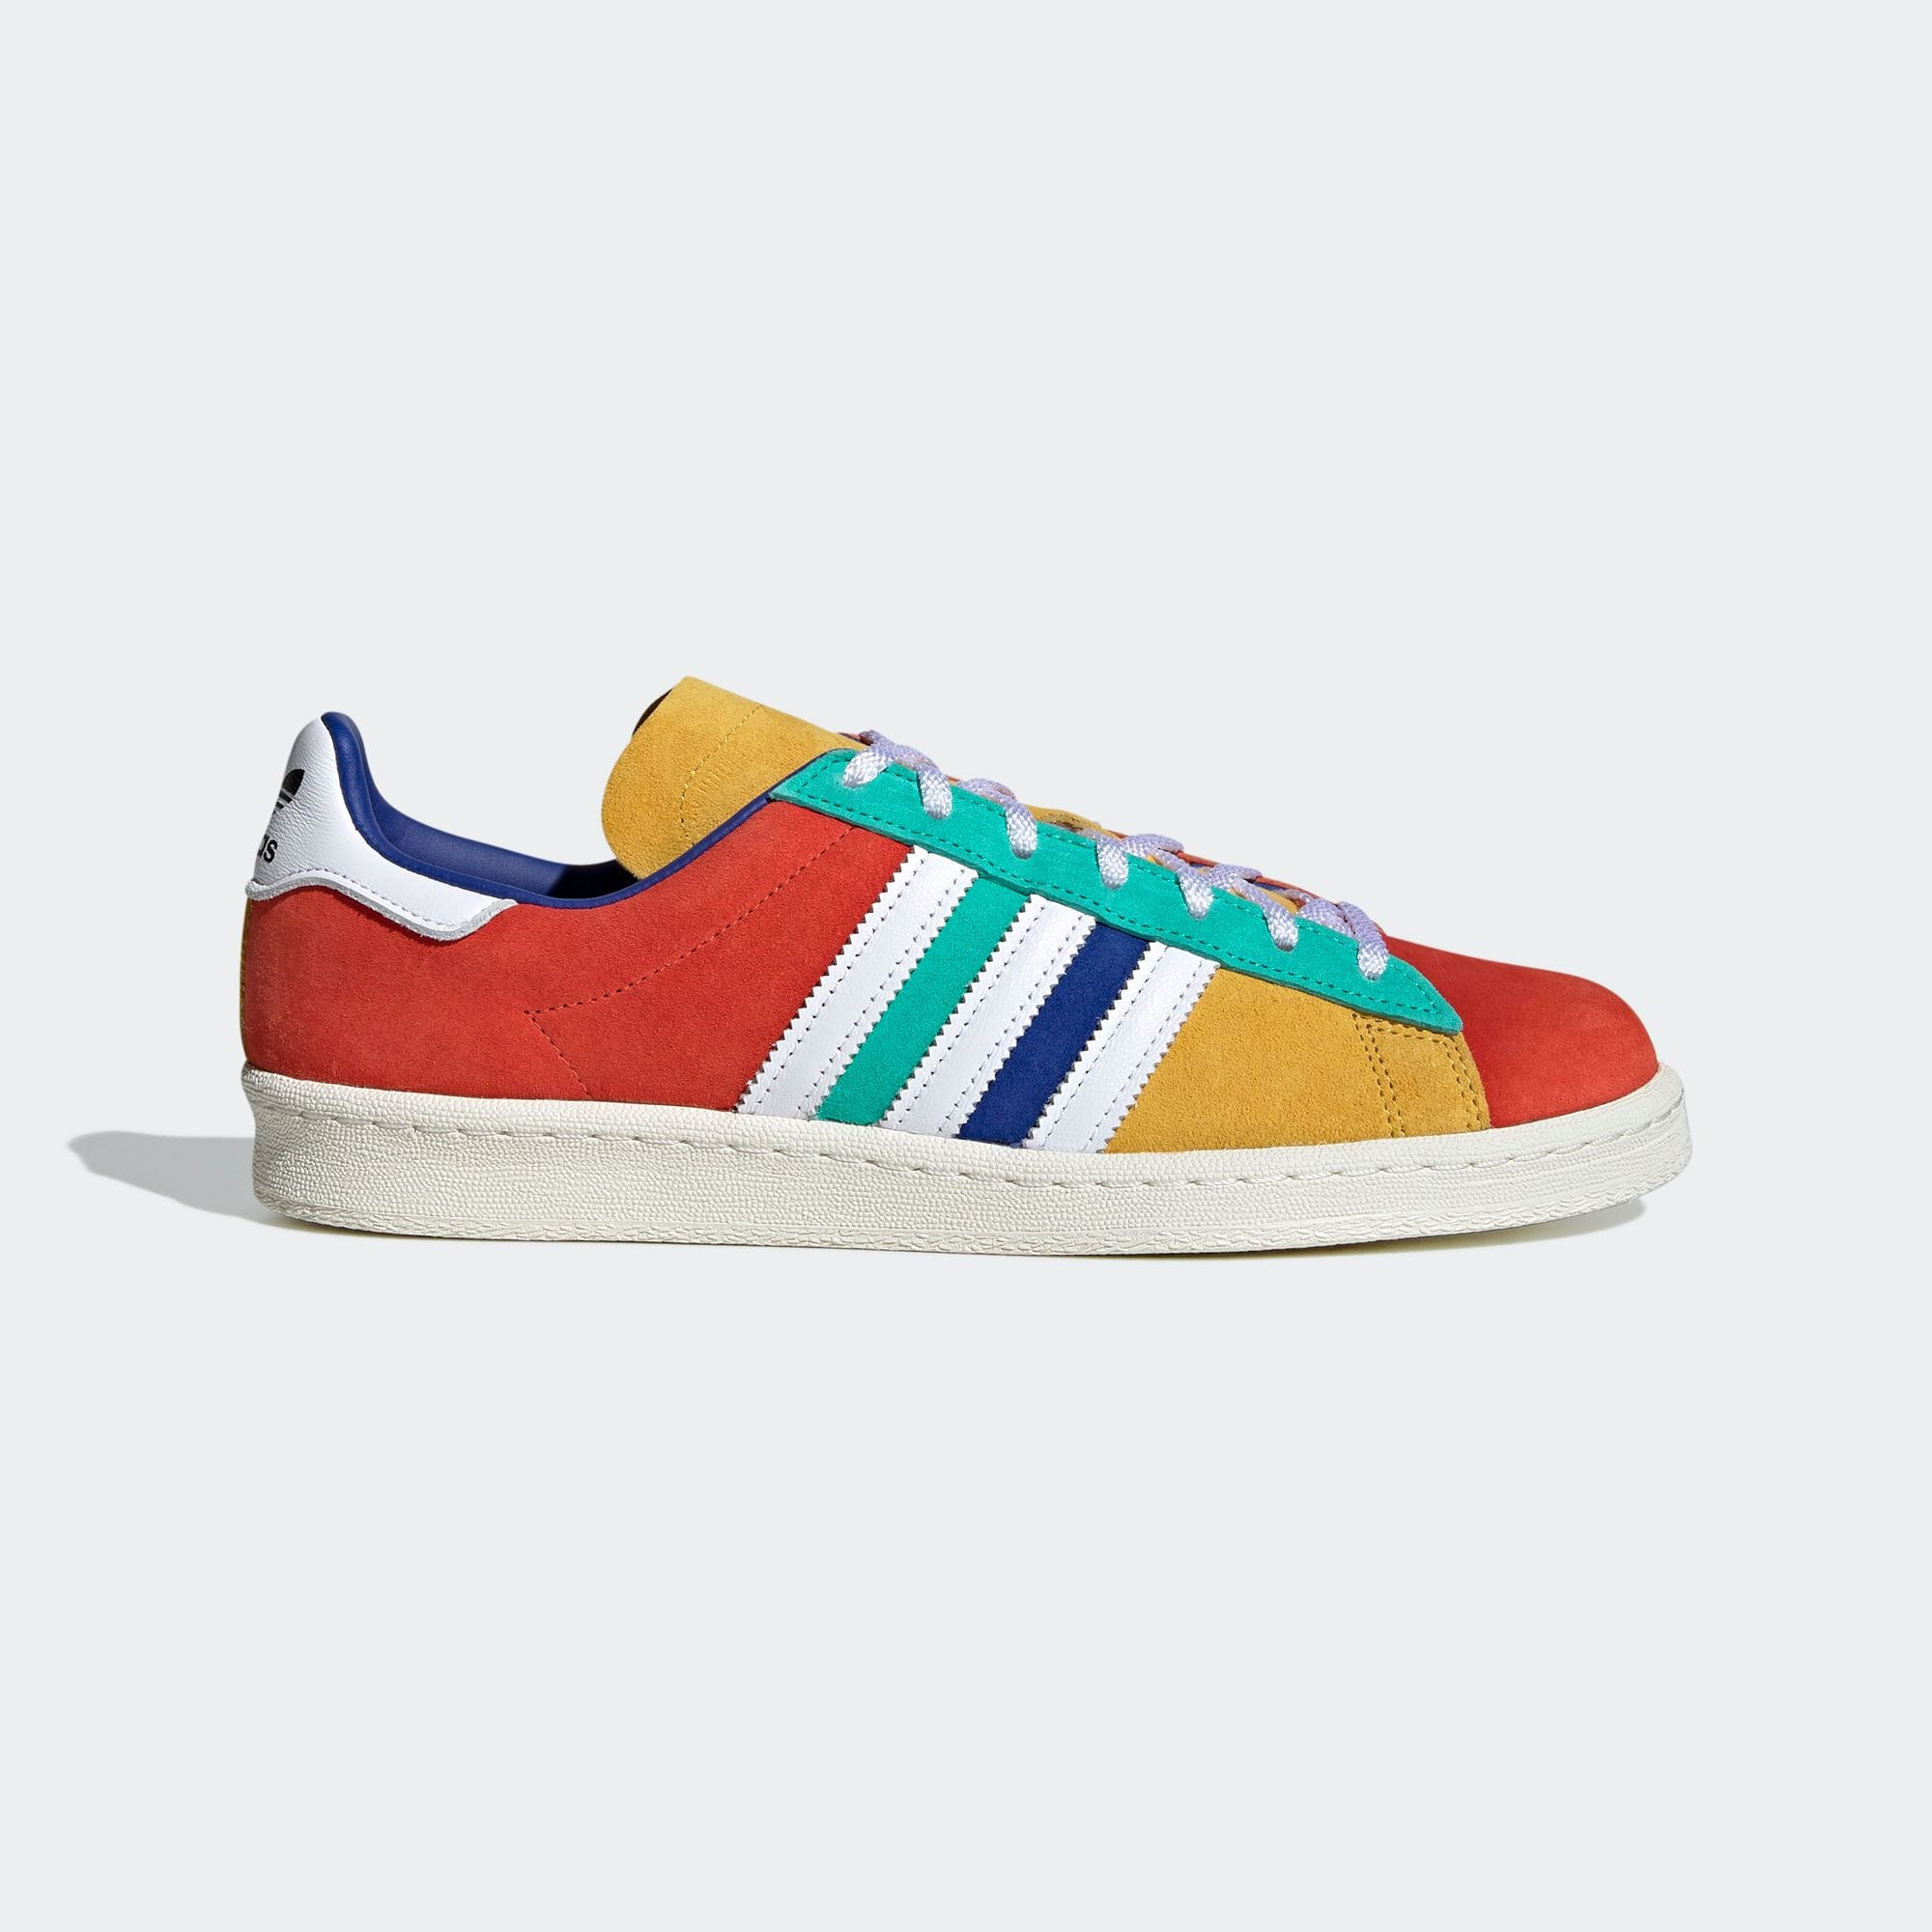 https://shop.adidas.jp/products/FW5167/